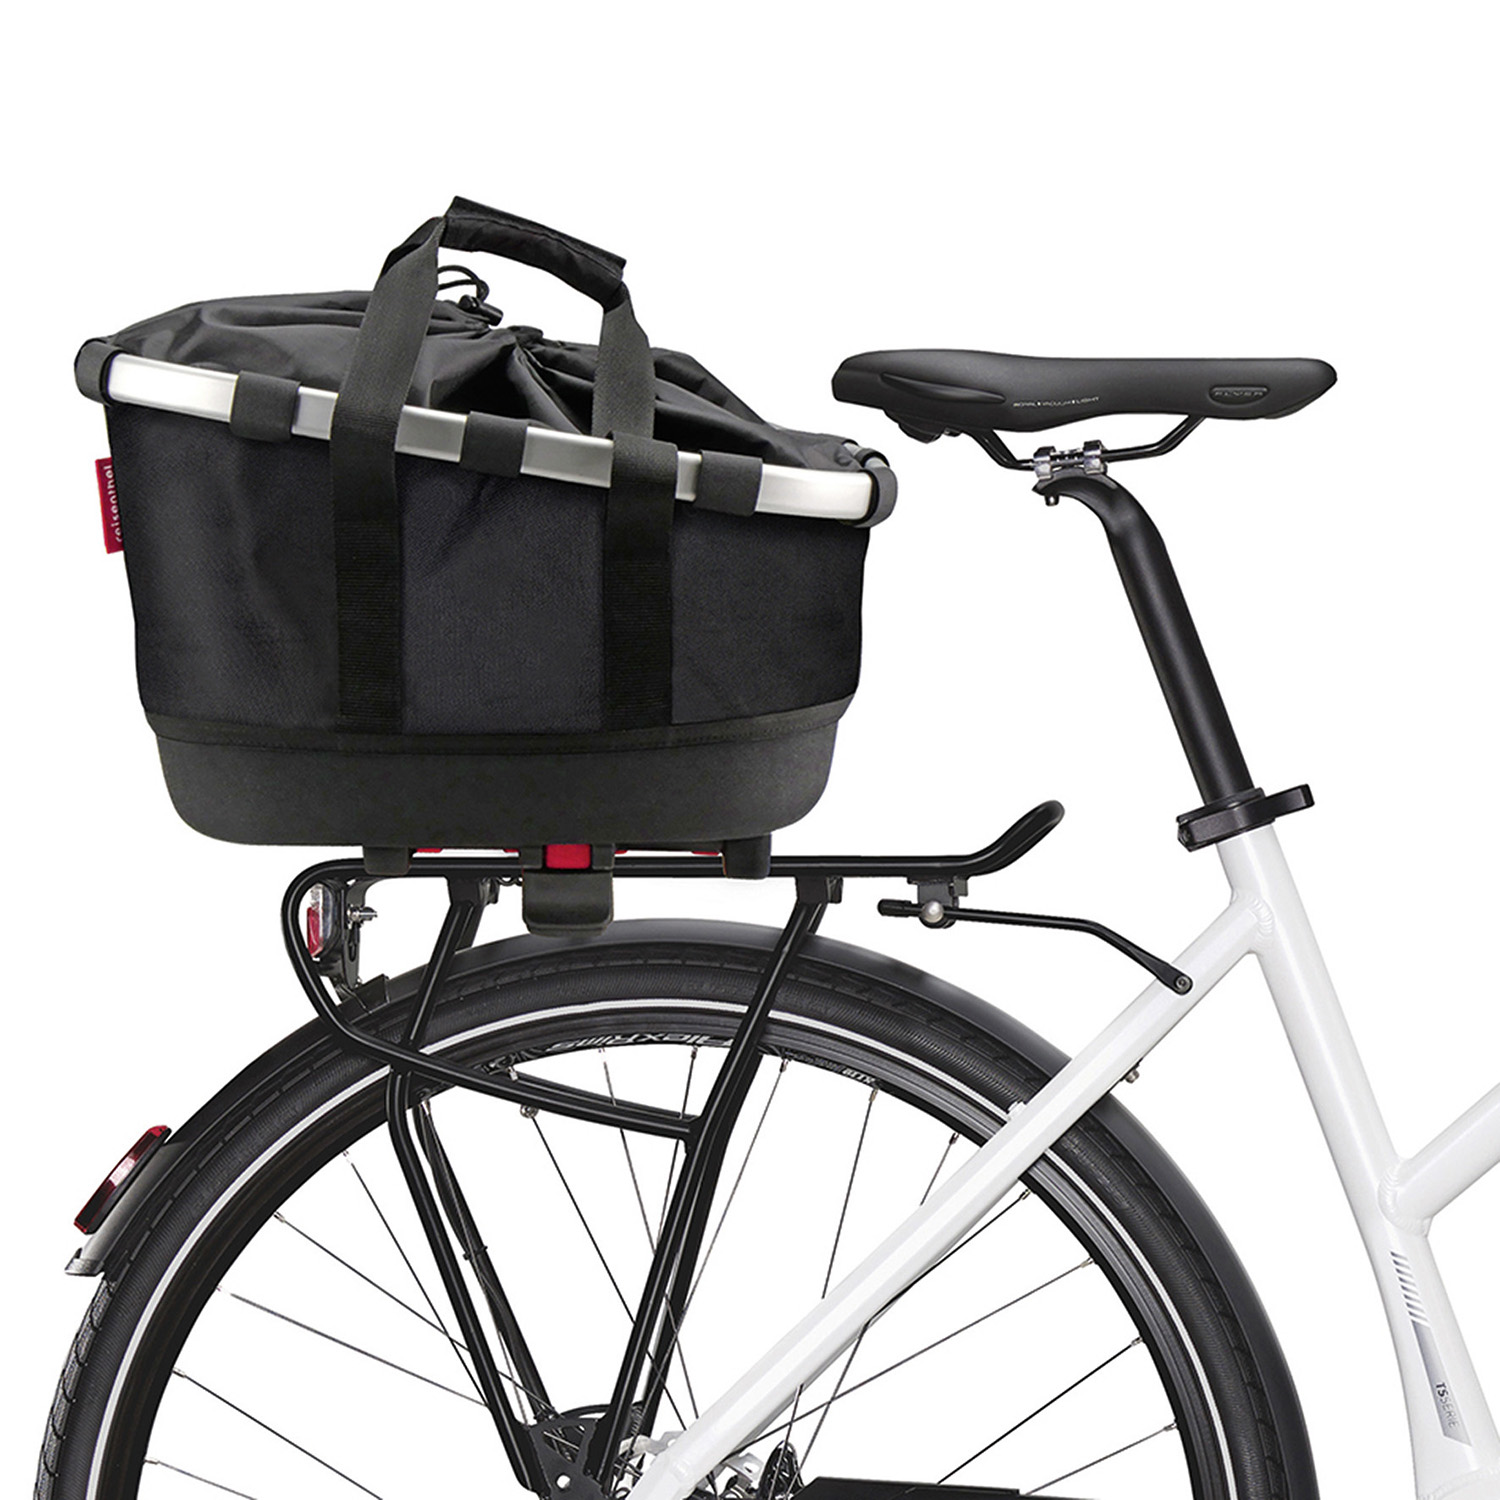 Bikebasket GT, longitudinal textile basket – for any type of carrier